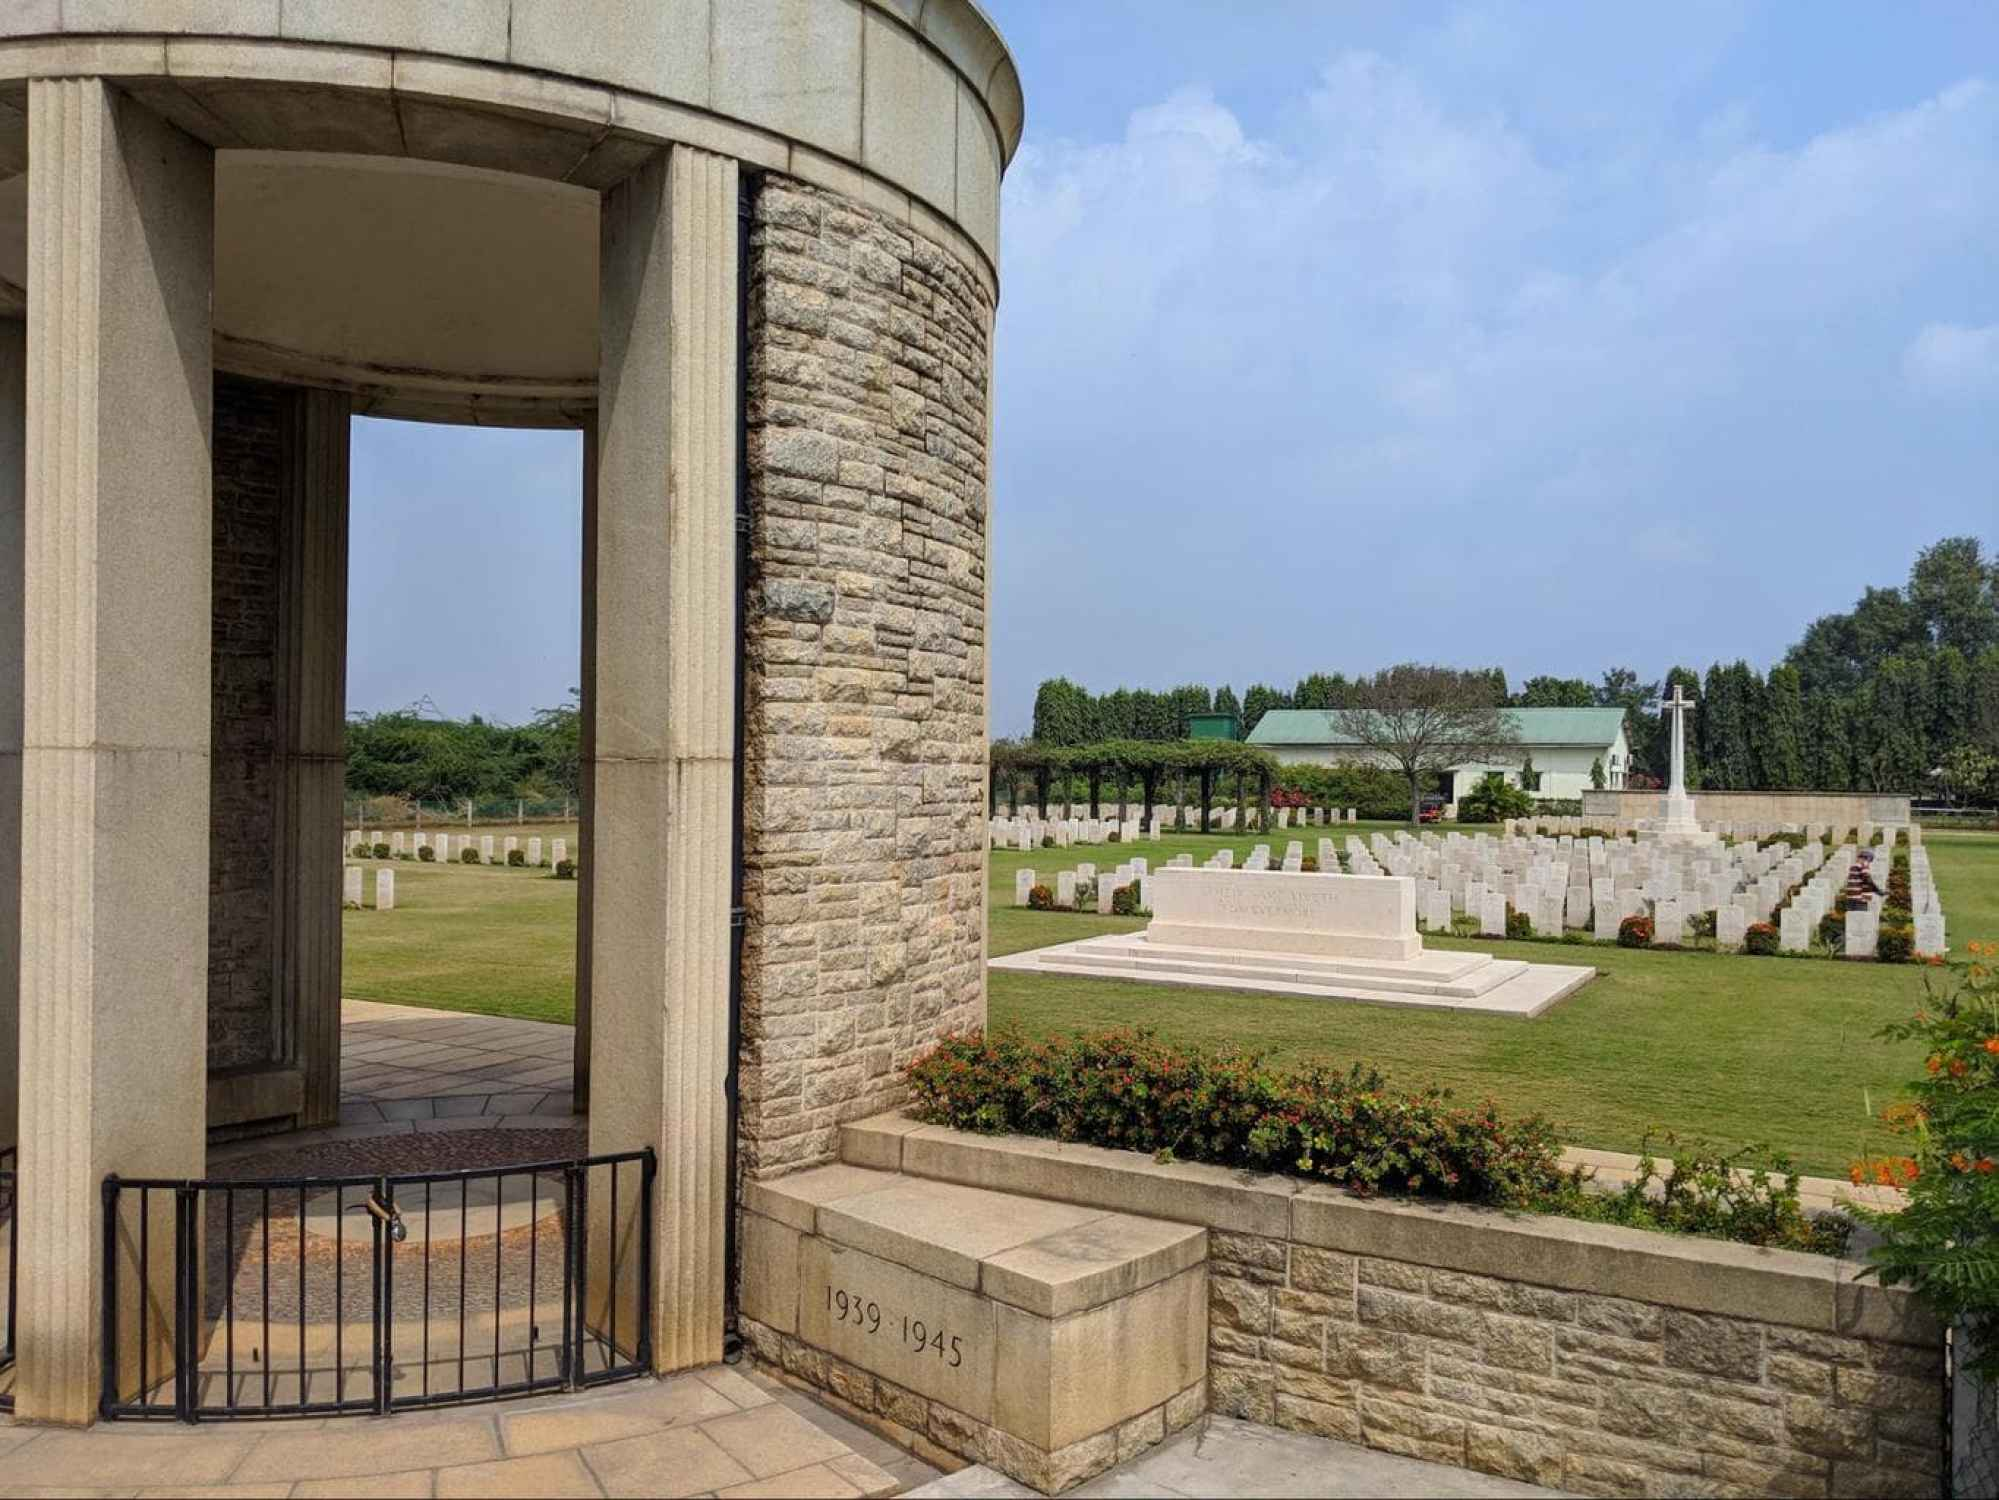 Madras War Cemetery memorial